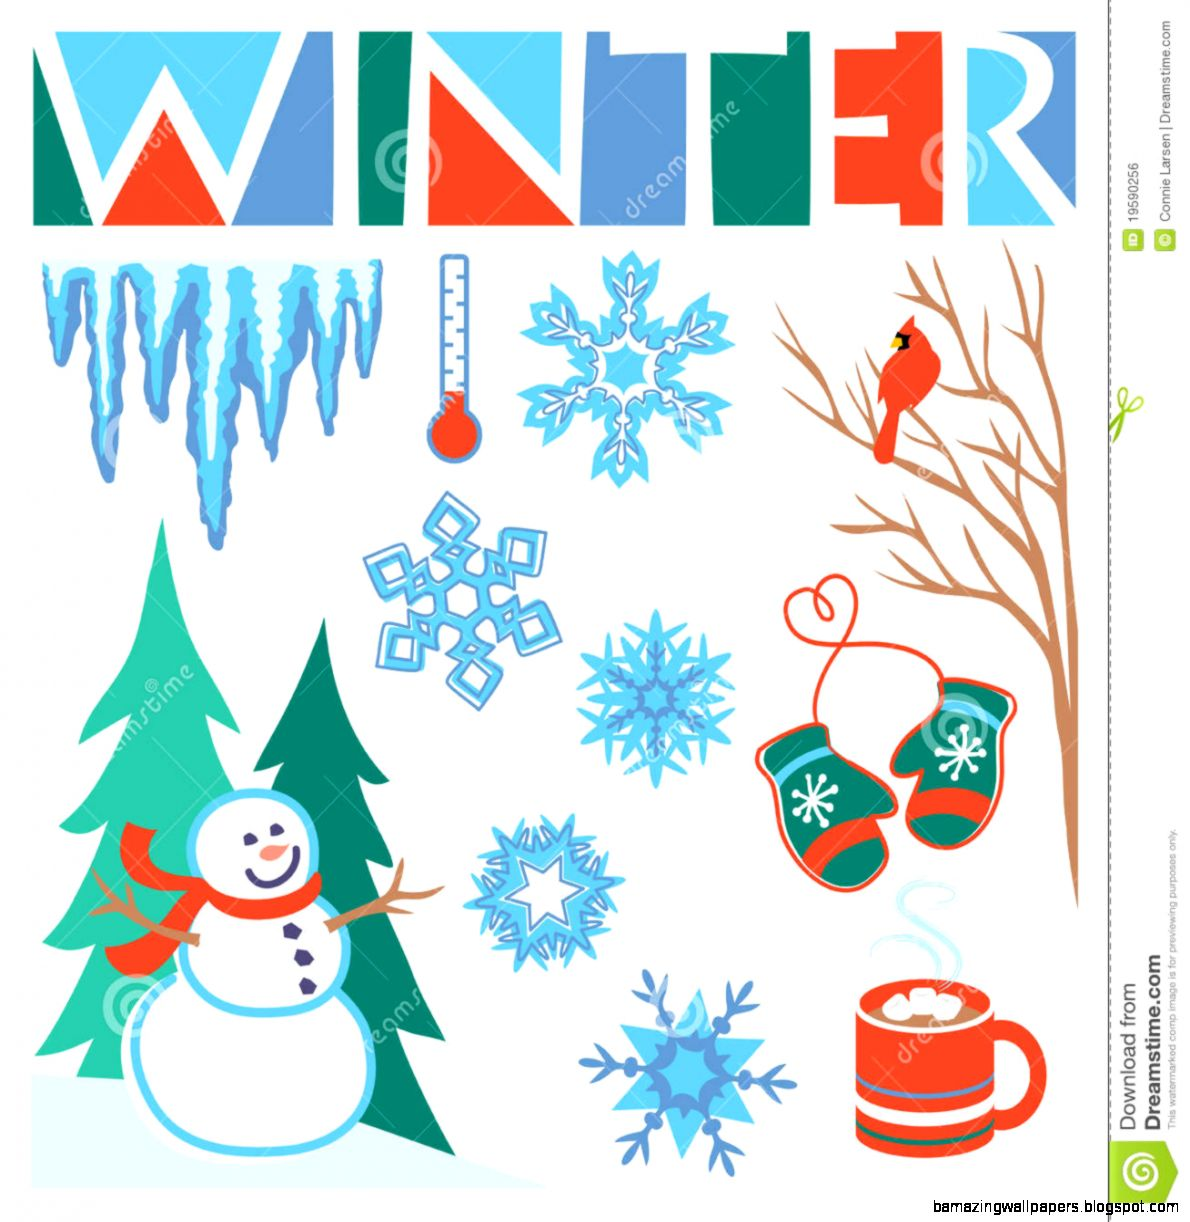 Winter Clip Art Seteps Royalty Free Stock Image   Image 19590256